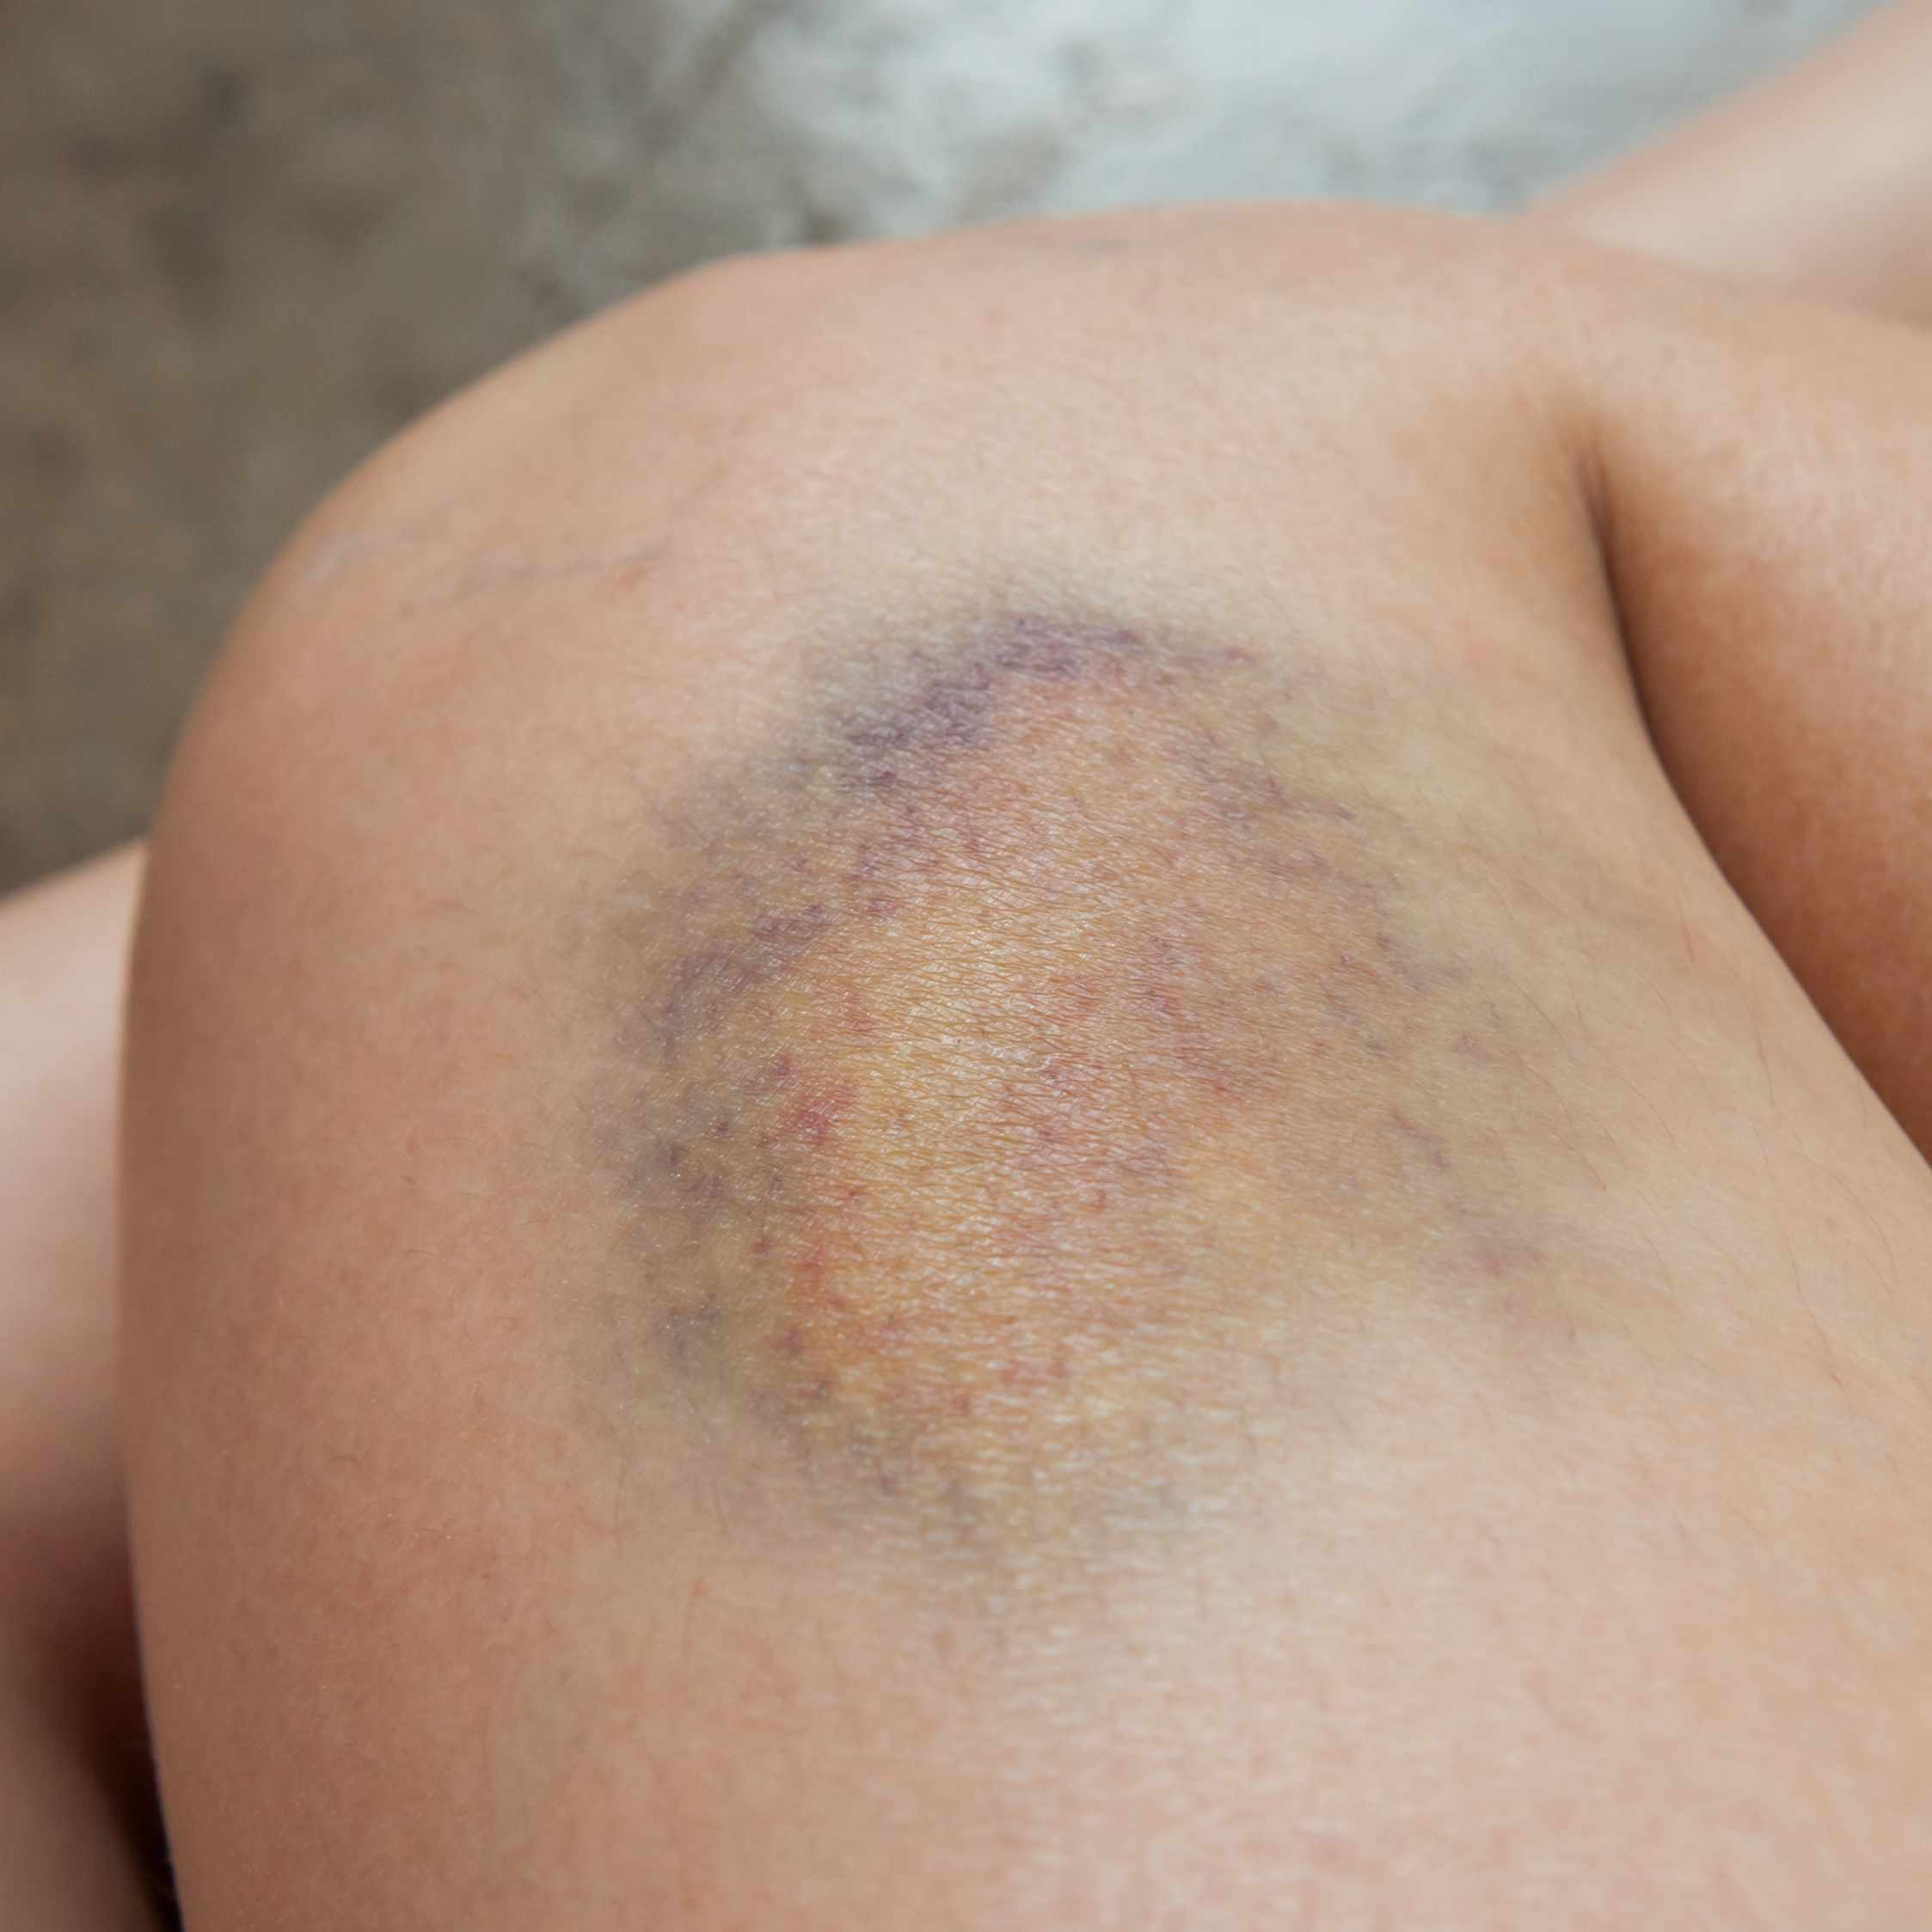 a person's leg with a large yellow, green and purple bruise